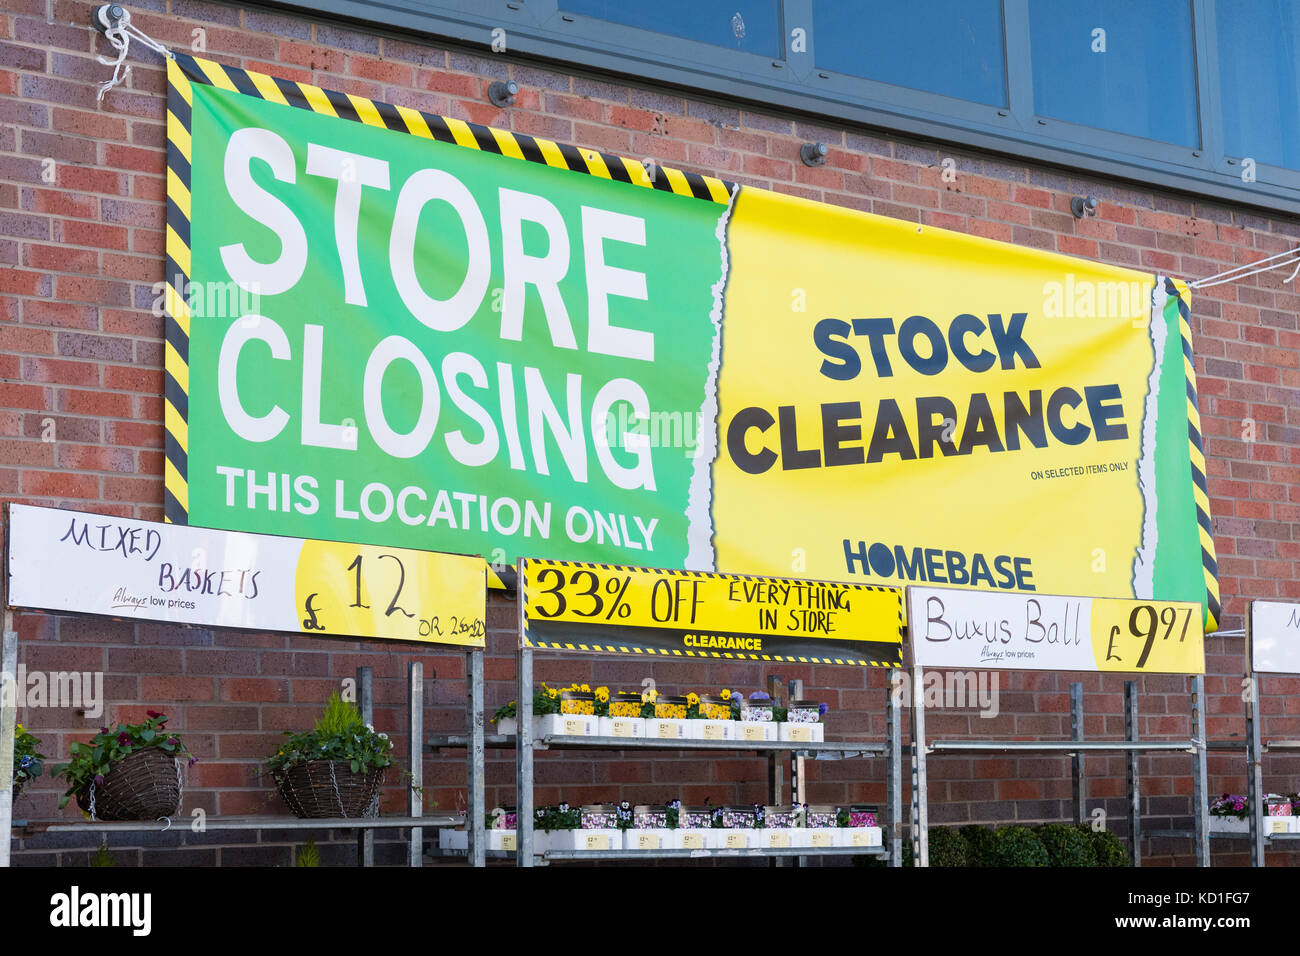 Homebase store fermeture vente signe, Milngavie, Ecosse, Royaume-Uni Photo Stock